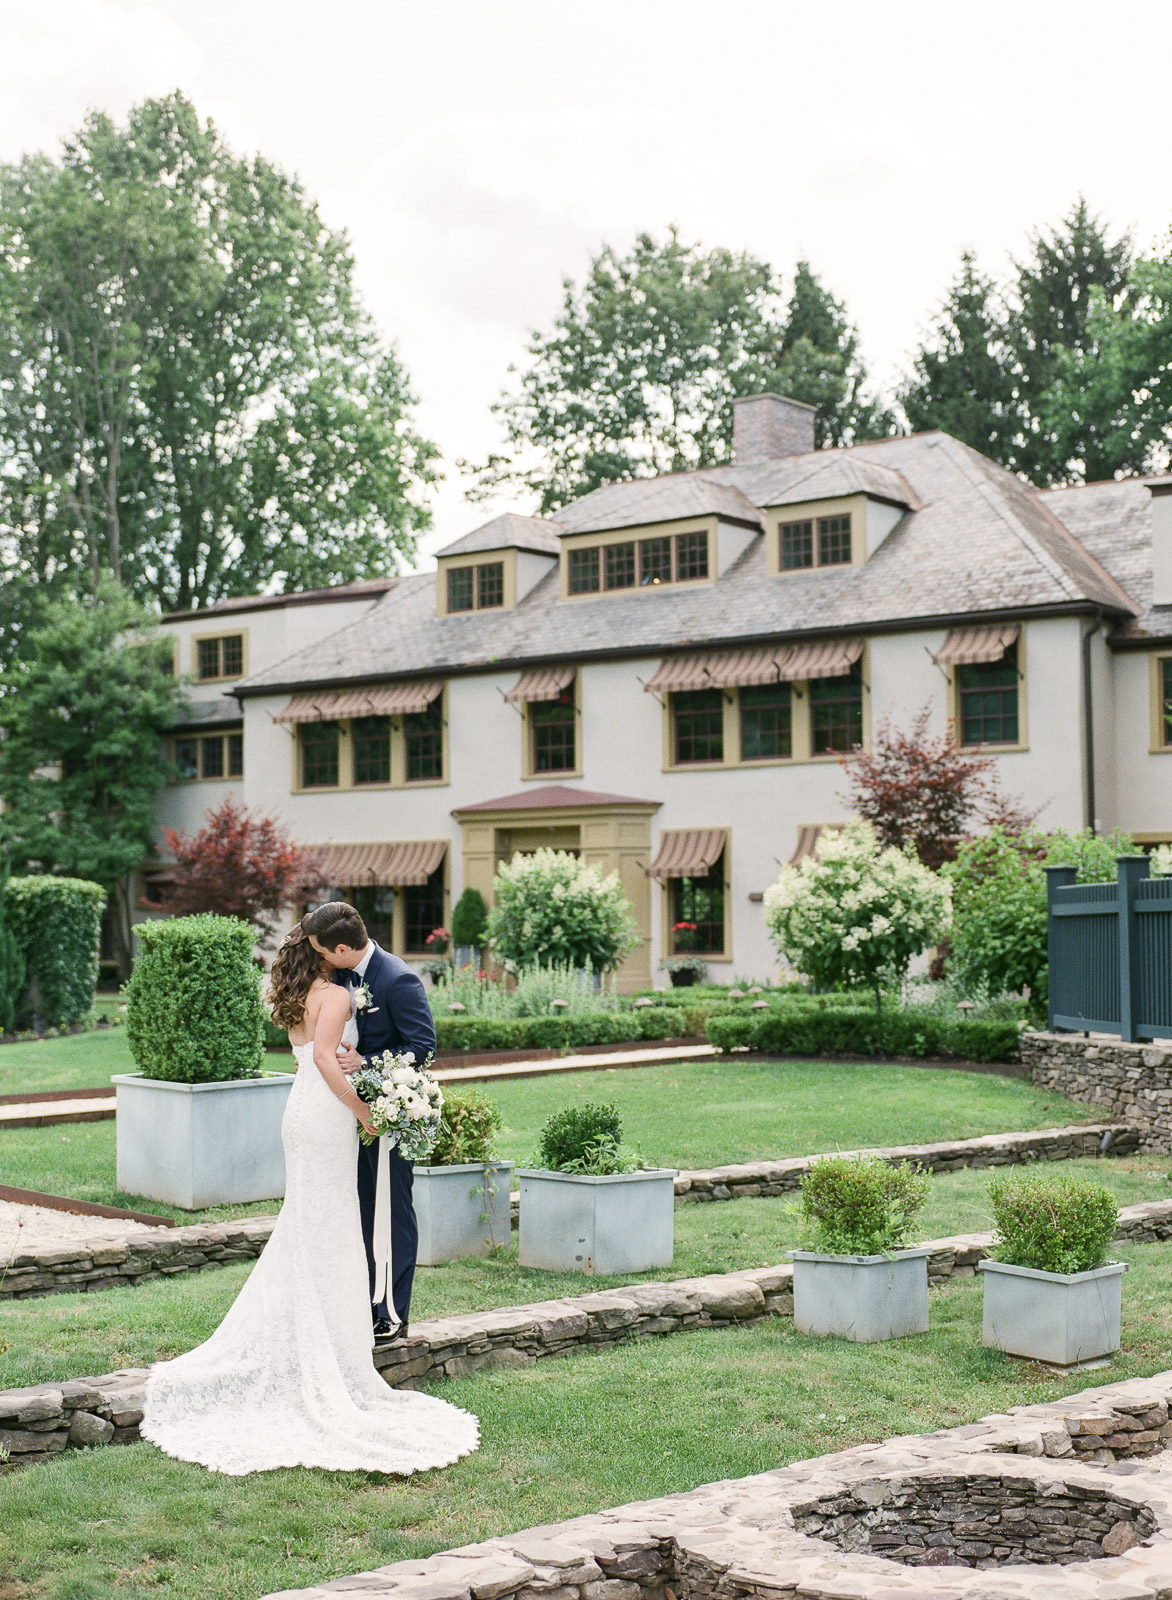 Hotel du Village wedding in New Hope, PA